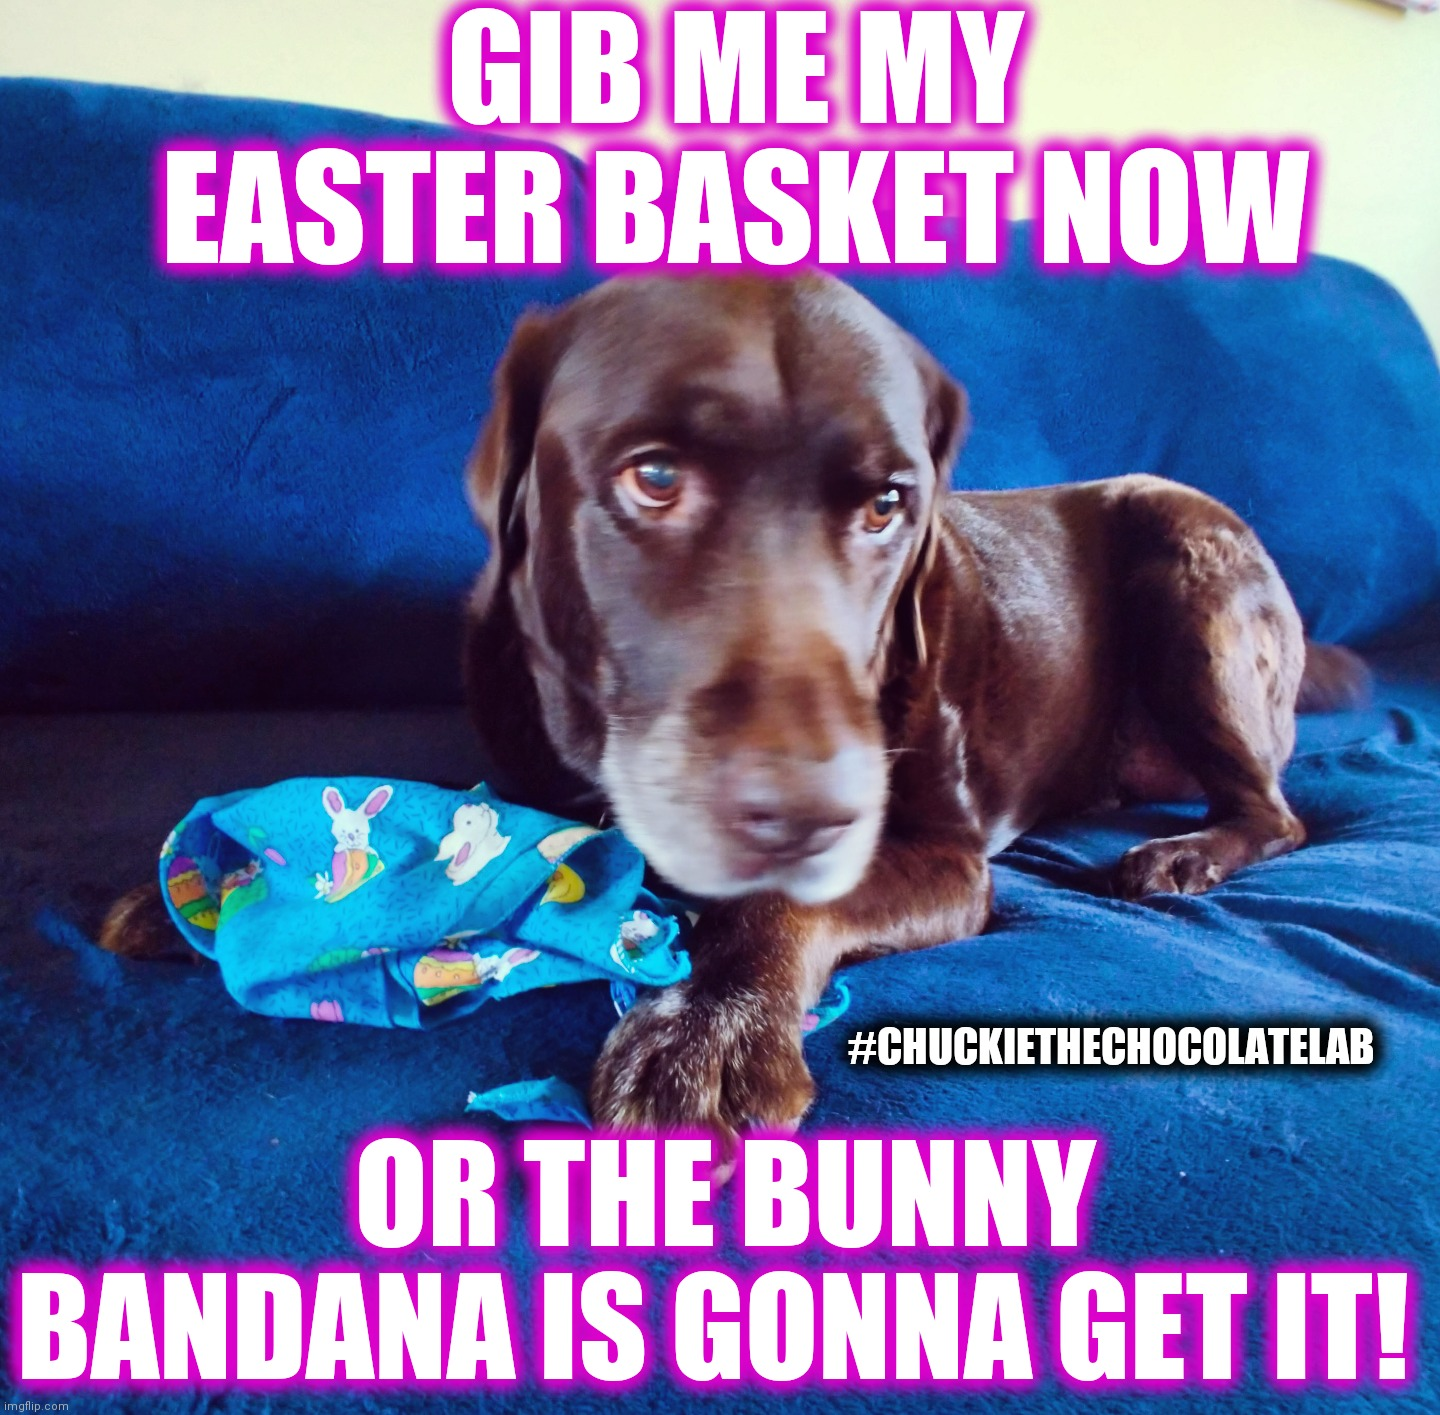 Easter basket or else! |  GIB ME MY EASTER BASKET NOW; #CHUCKIETHECHOCOLATELAB; OR THE BUNNY BANDANA IS GONNA GET IT! | image tagged in chuckie the chocolate lab,easter,funny,dogs,memes,happy easter | made w/ Imgflip meme maker